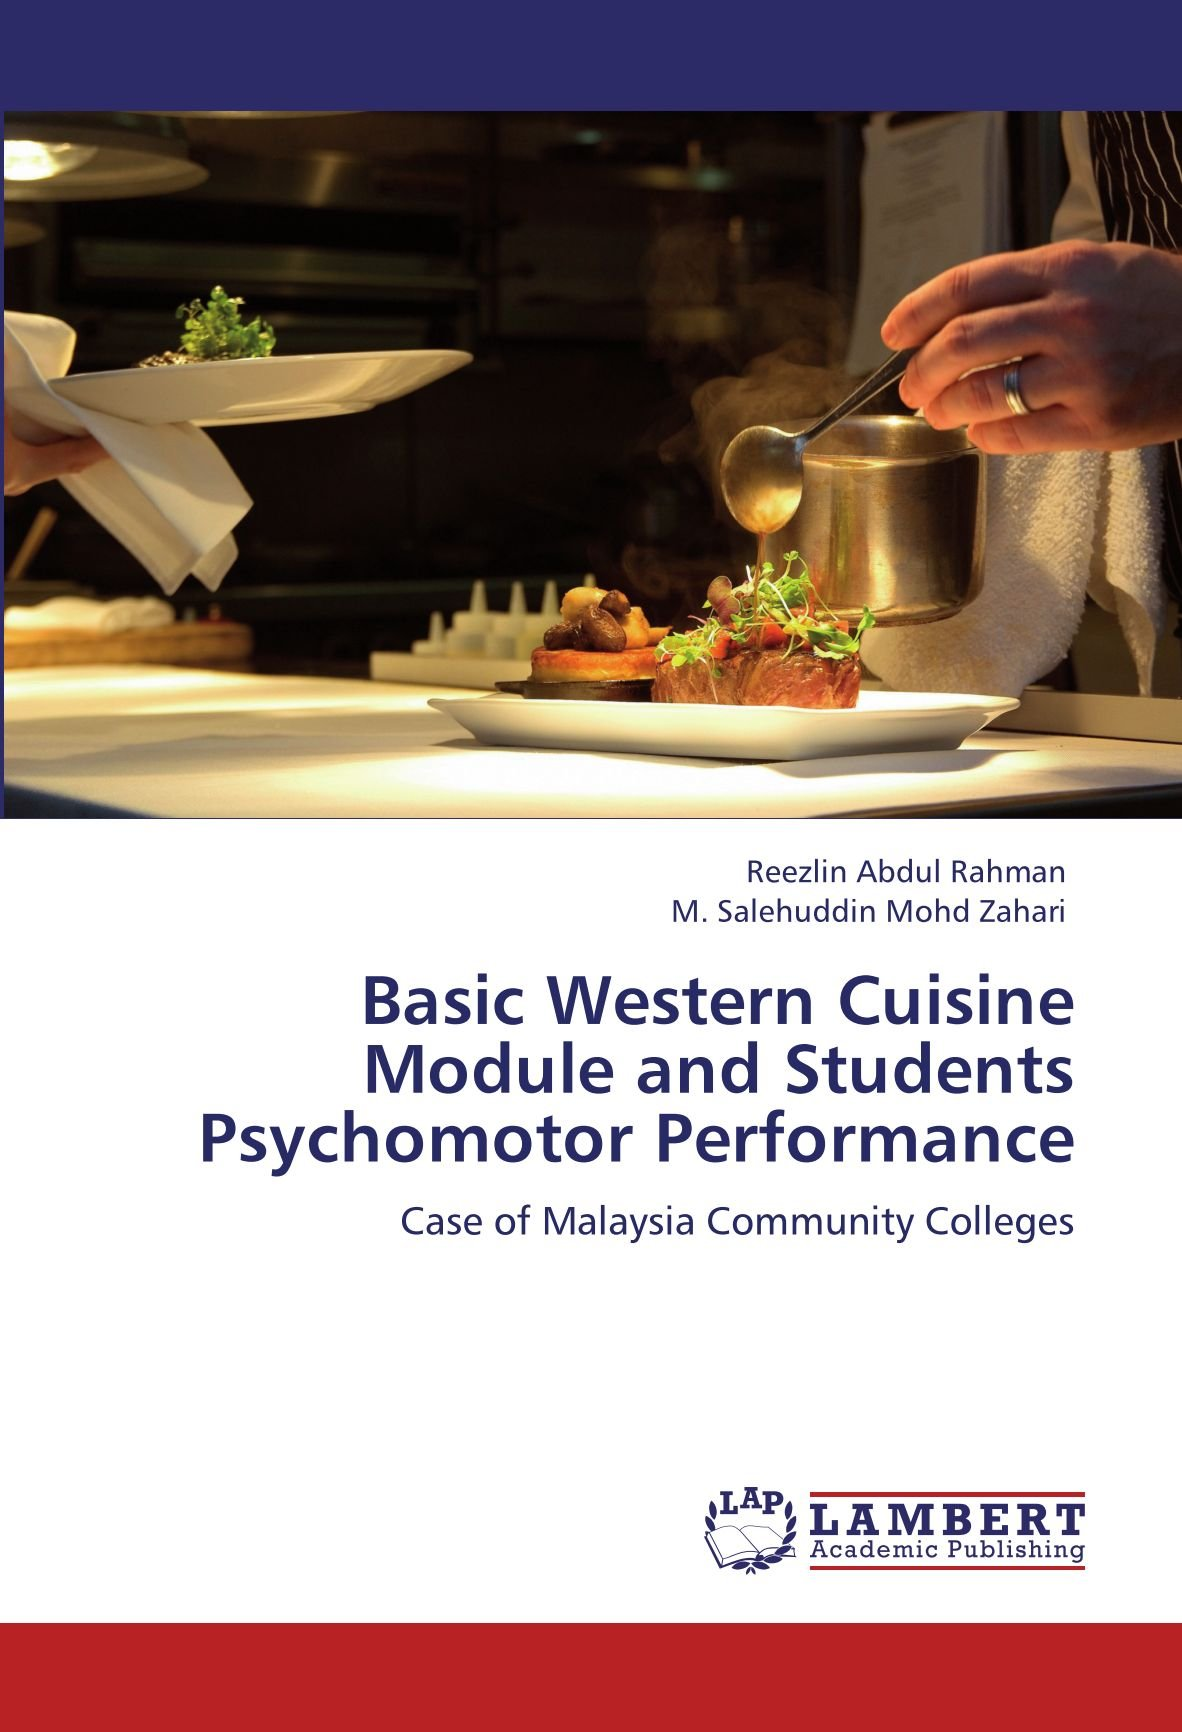 Basic Western Cuisine Module and Students Psychomotor Performance: Case of Malaysia Community Colleges PDF